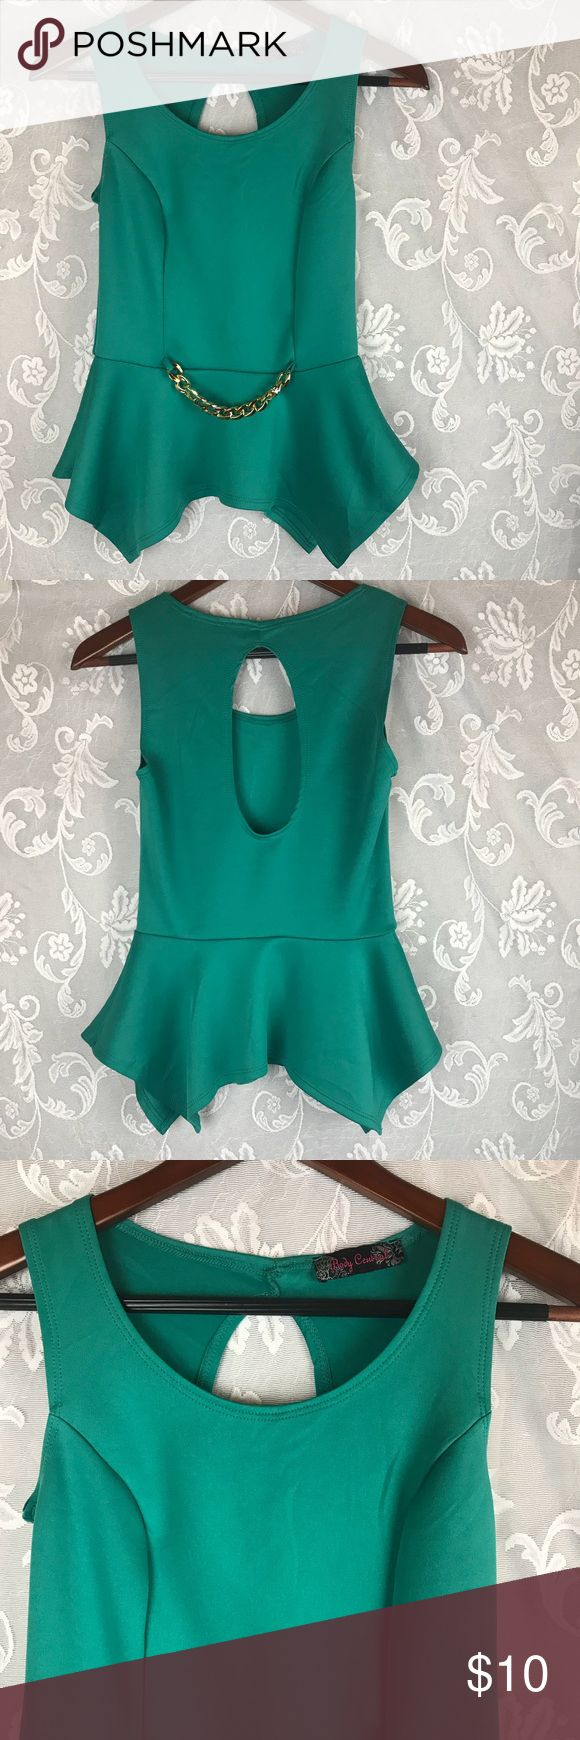 """Body central women's size s/m green peplum style Body central women's size s/m green peplum style  chains on waist   Gently used no flaws   Approx measurements garment lay flat: Length 24"""" Armpit to bottom cuff 12"""" Neck 9"""" Chest 14"""" Waist 12"""" Waist to bottom cuff 6"""" Arm opening 7"""" Back key hole 8""""     PICTURES ARE AN IMPORTANT PART OF THE DESCRIPTION PLEASE CAREFULLY VIEW THEM TO BETTER JUDGE SIZE, COLOR, CONDITION, ETC.  Item comes from a pet/smoke-free home.  Thank you so much for looking…"""